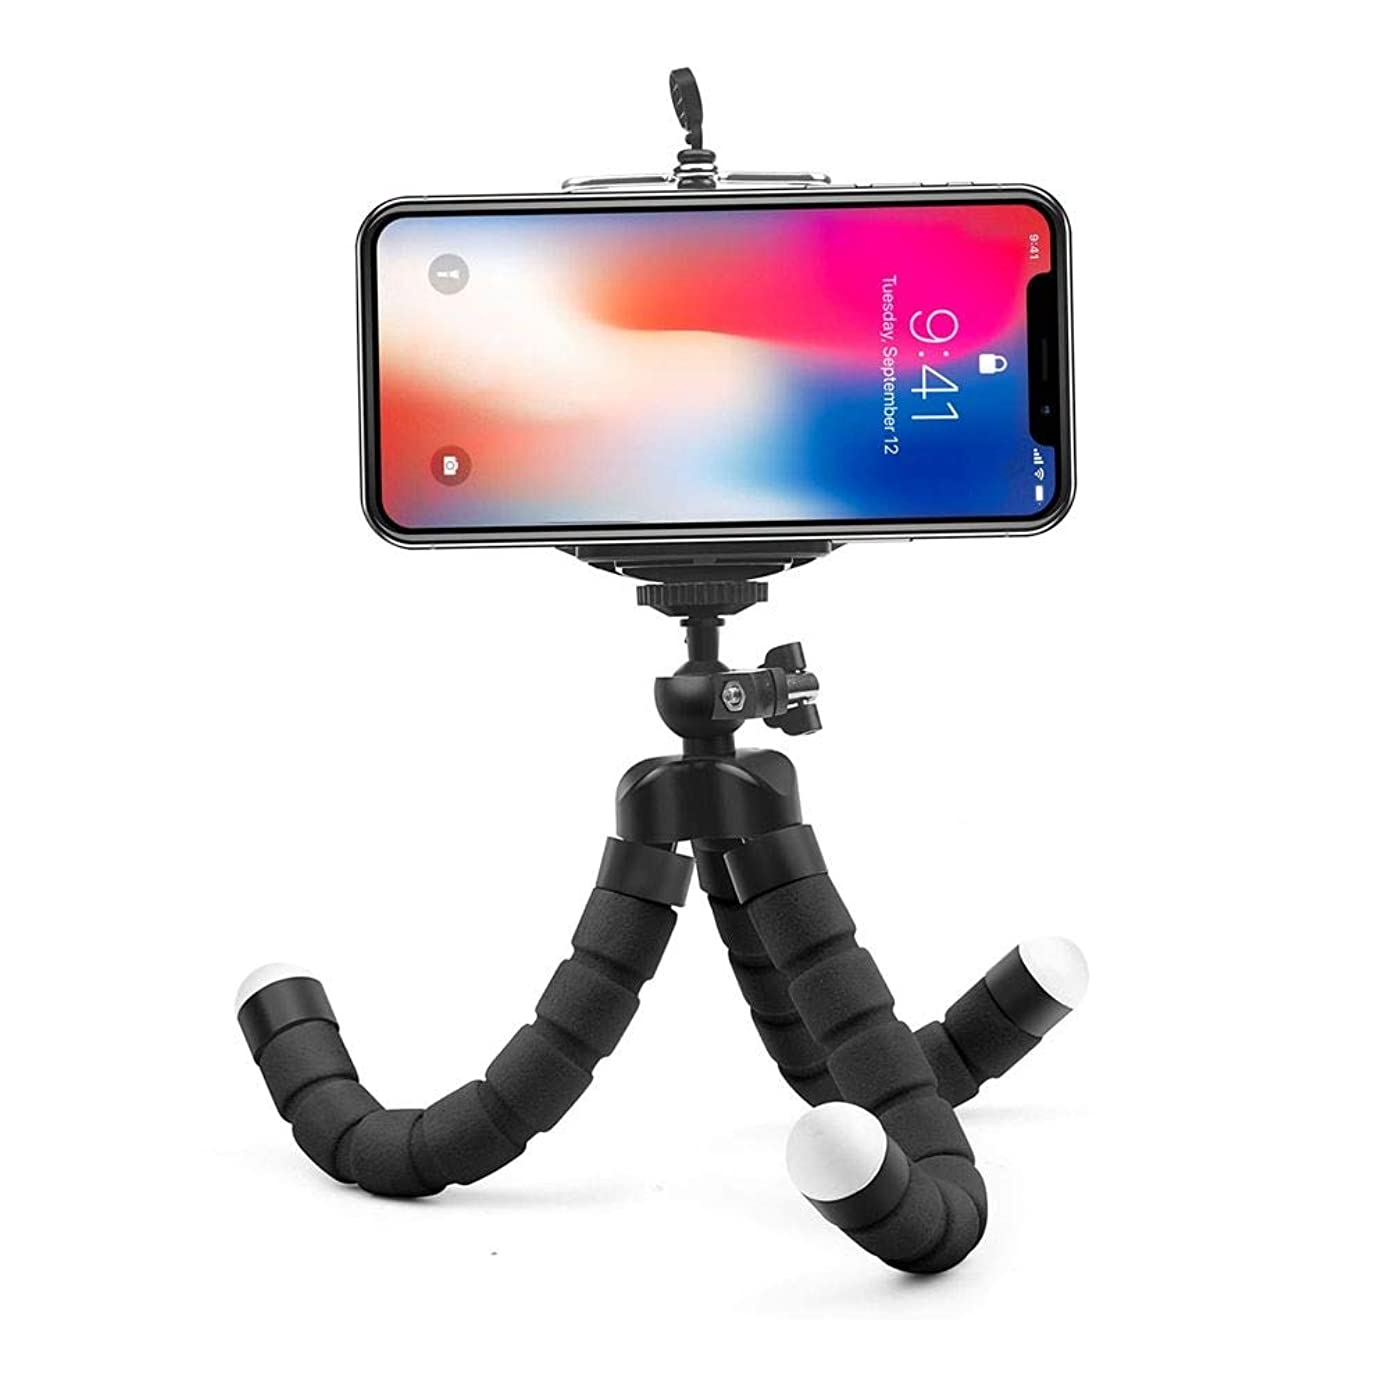 Mini Tripod for Mobile Phone or Camera Holder Tripods Clip Smartphone Monopod Tripe Stand Octopus Mini Tripod Stativ for Phone